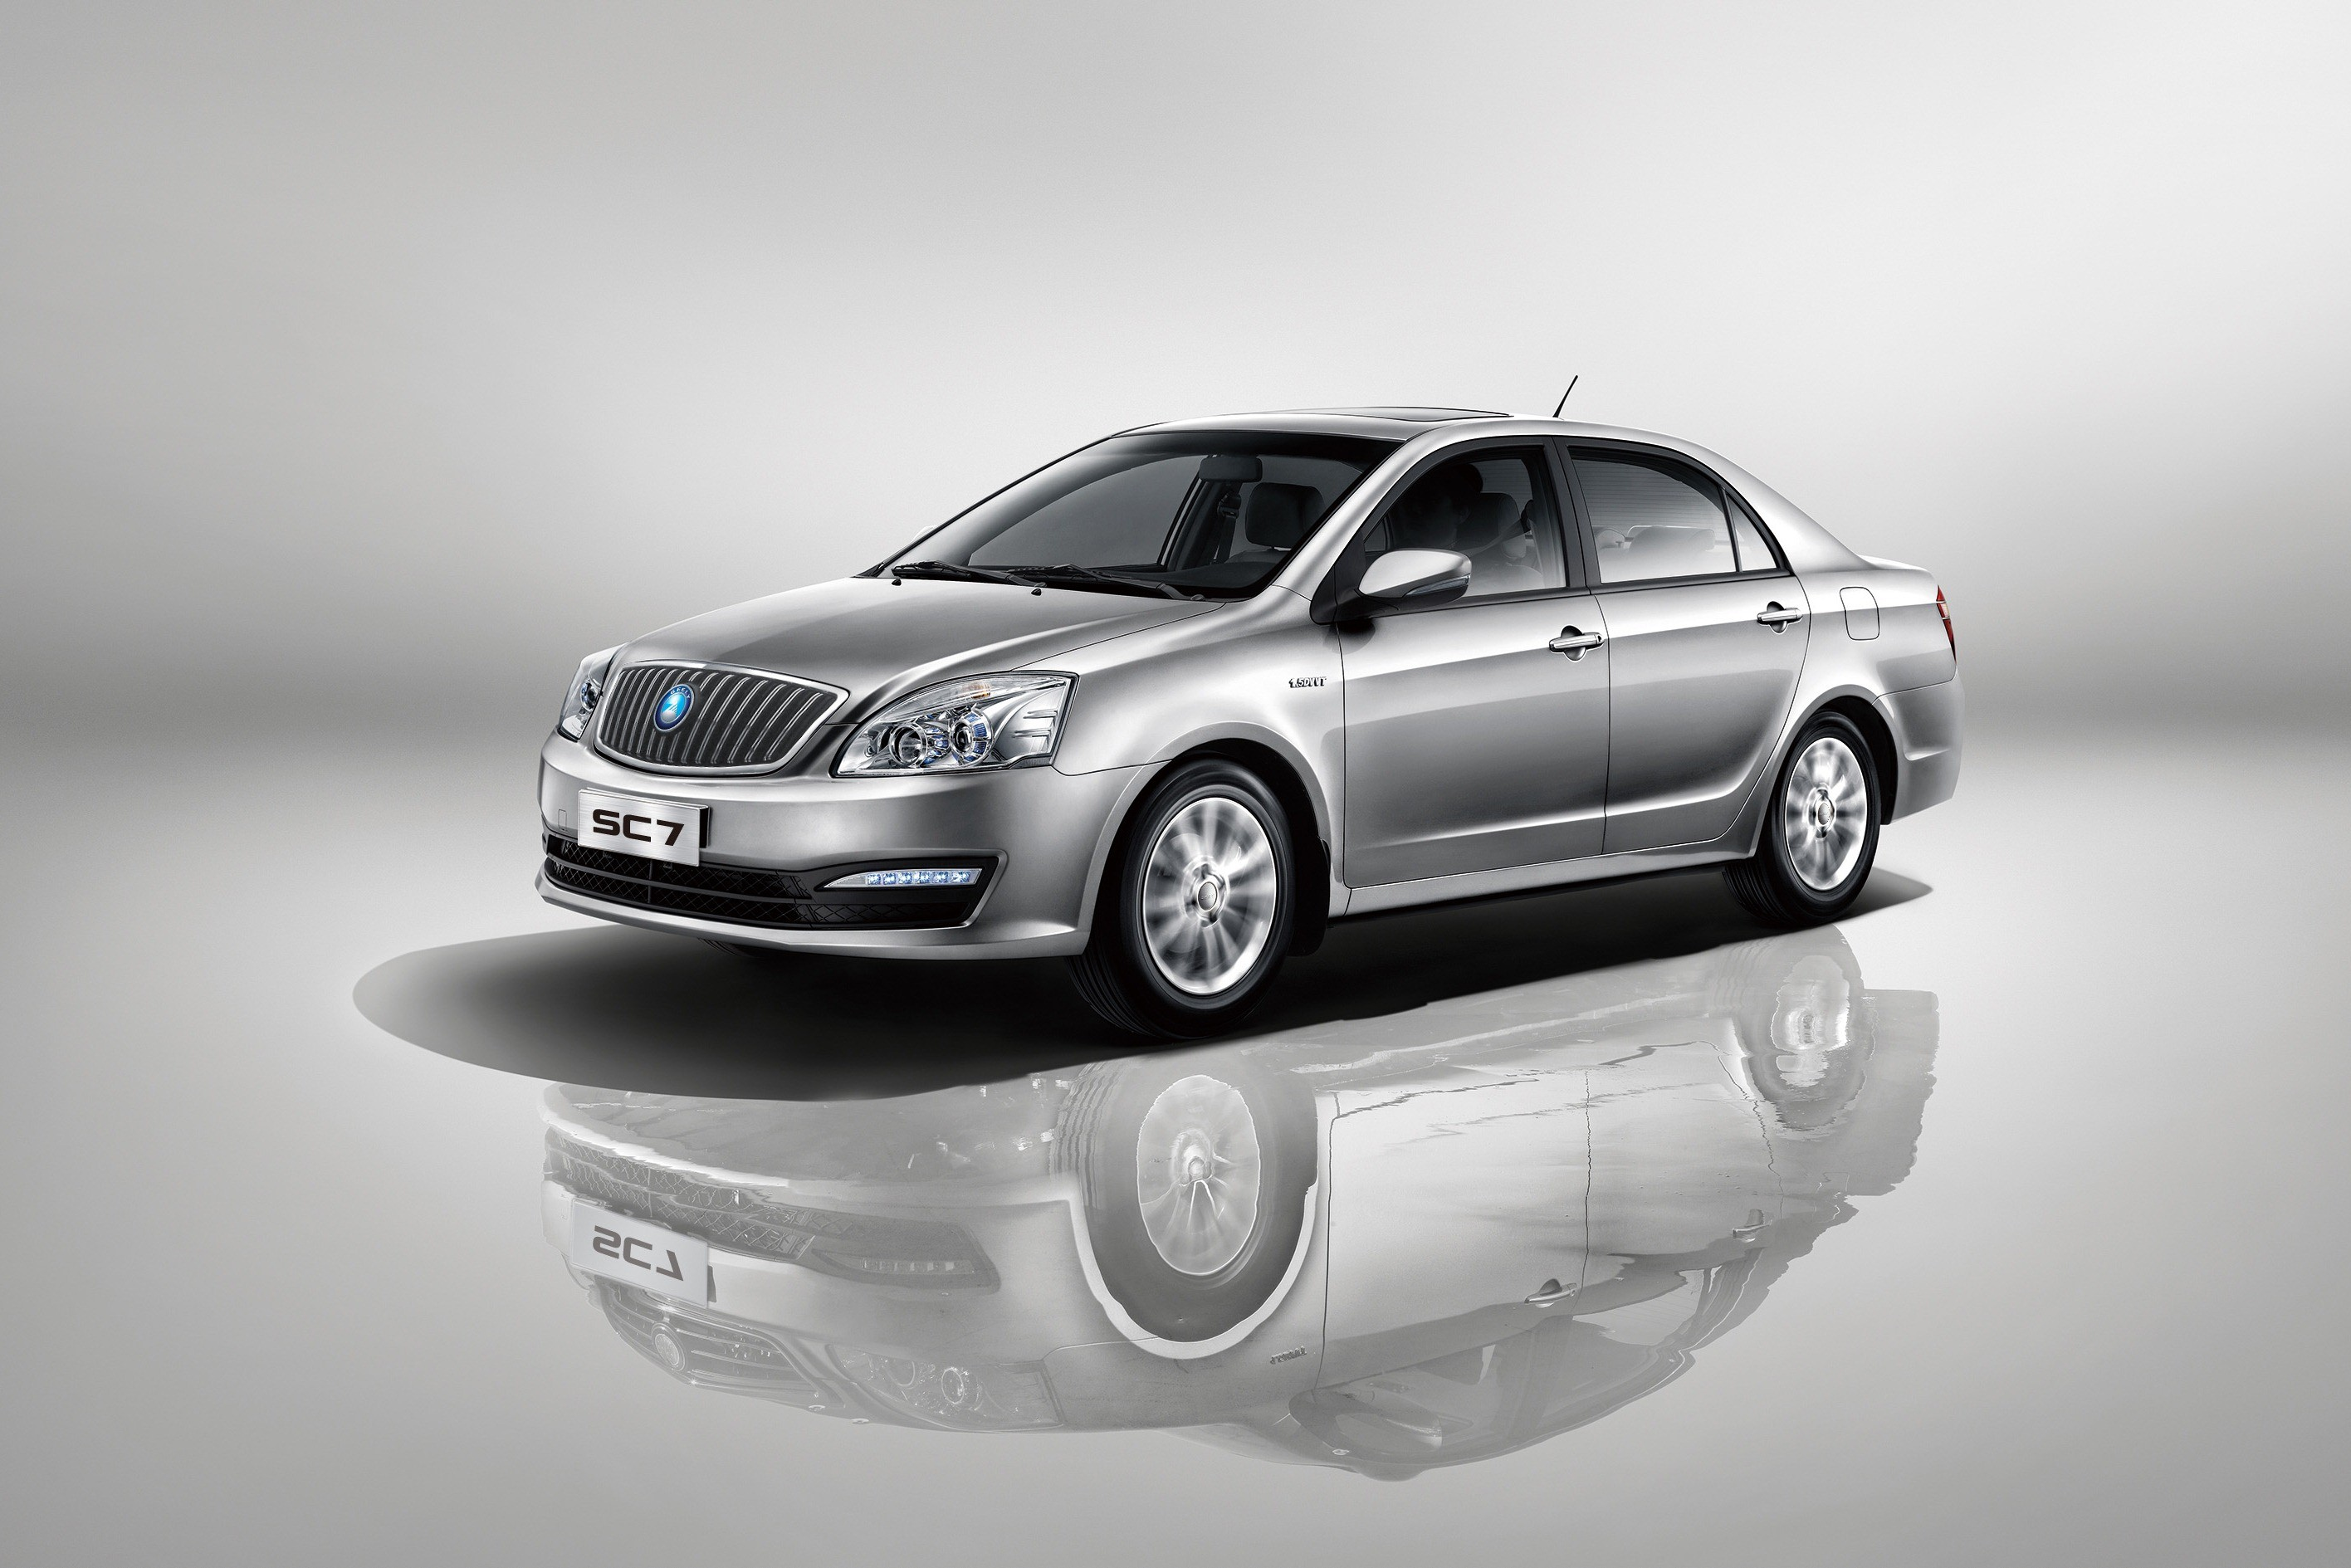 geely sc 7 images